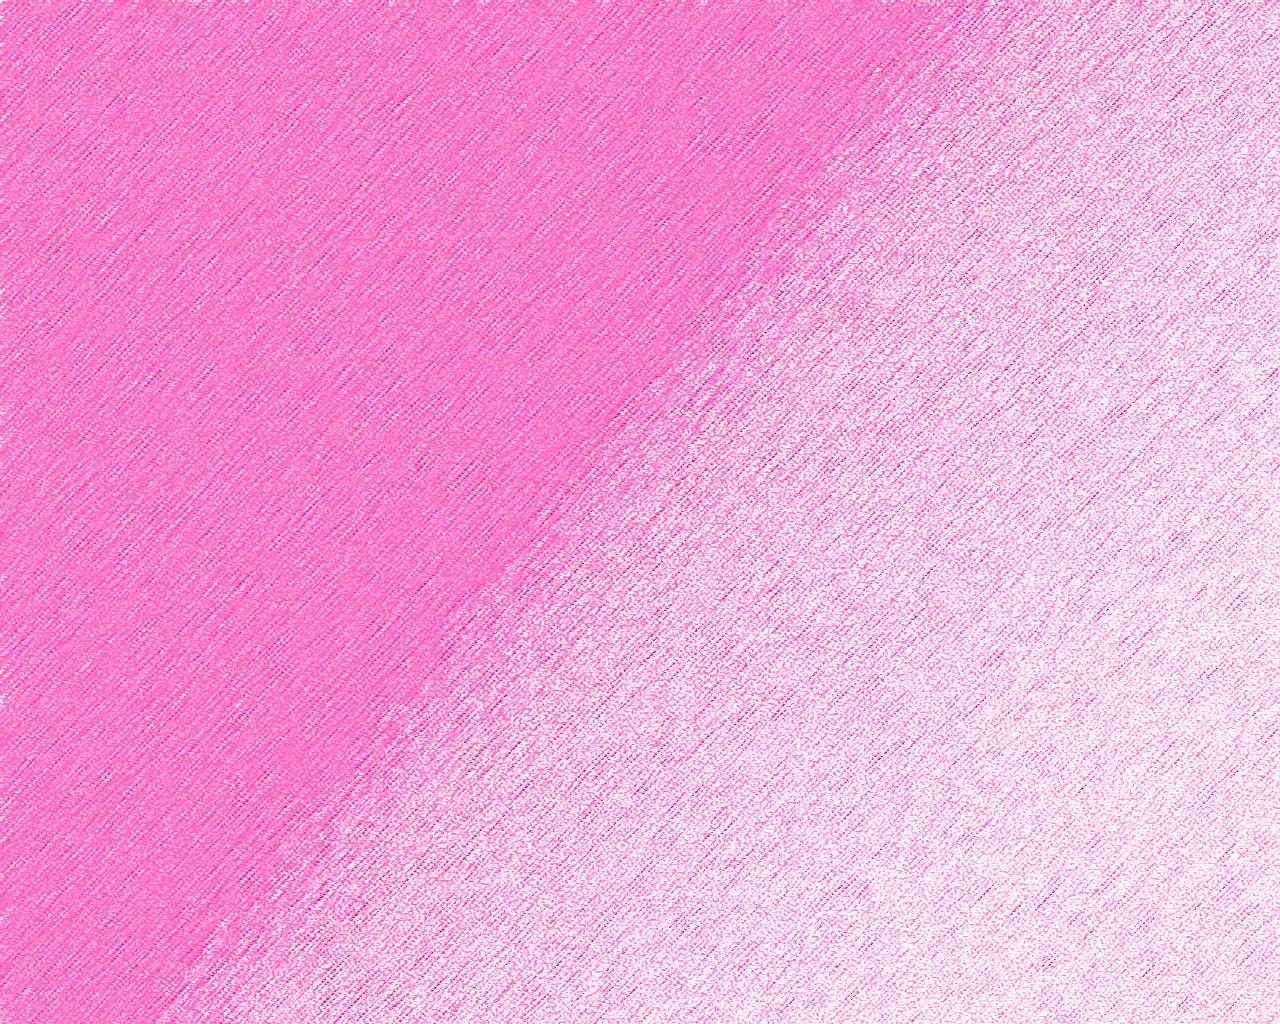 Really Cute Wallpapers Pink Abstract